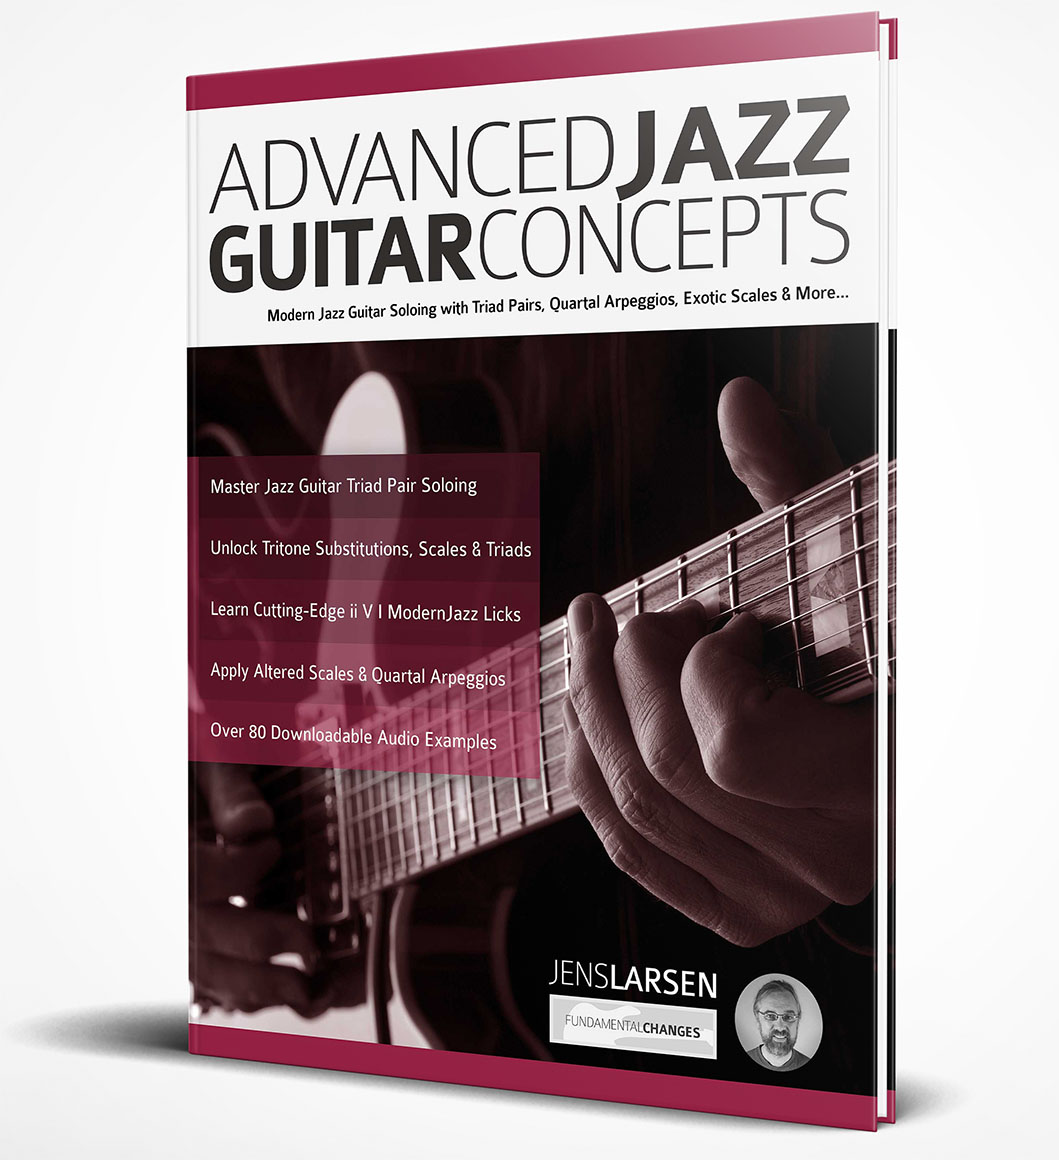 Advanced Jazz Guitar Concepts Book cover